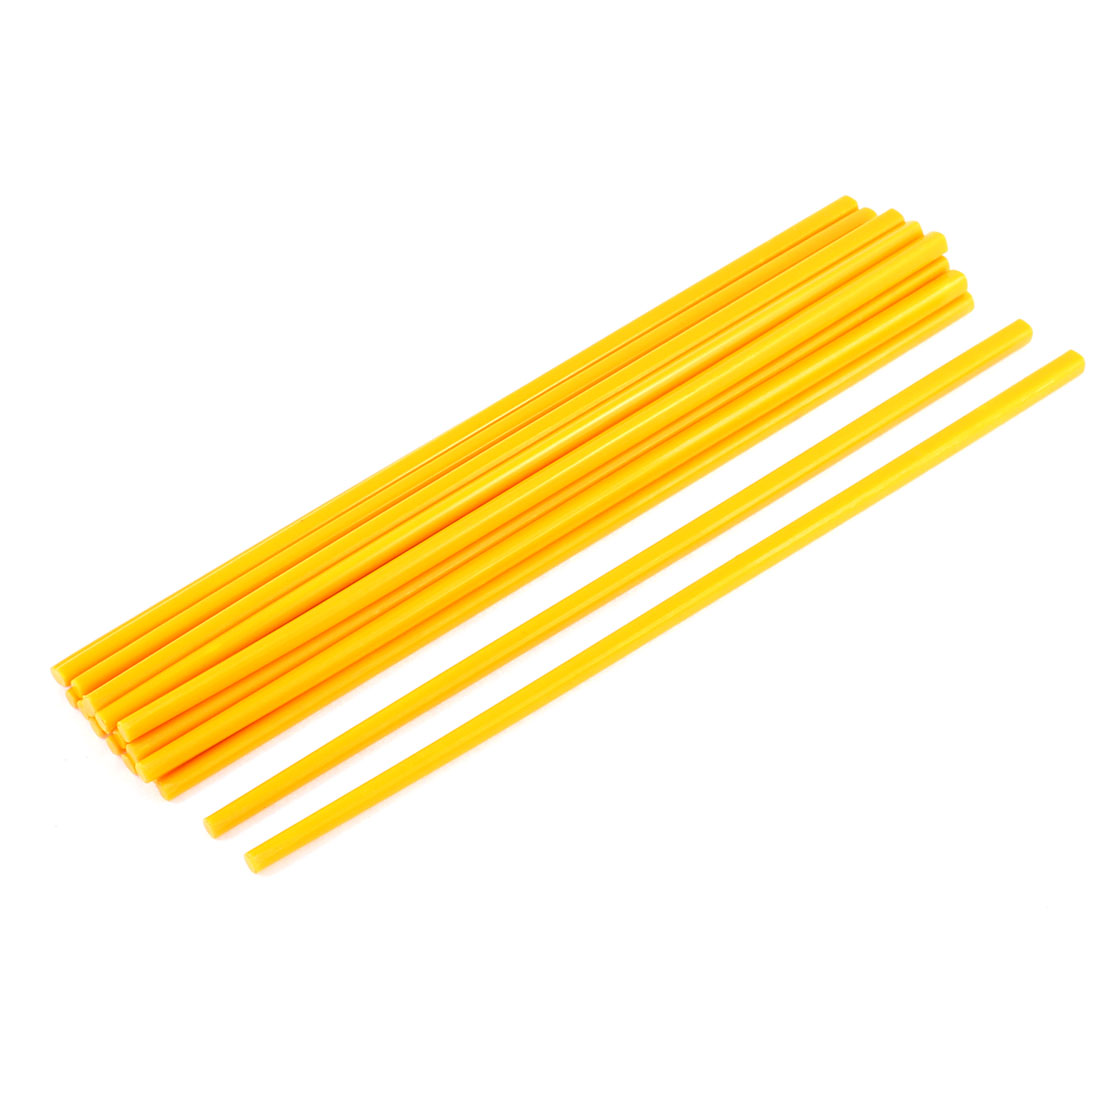 Home Kitchen Dinner Plastic Chopsticks Orange 27cm Length 10Pairs